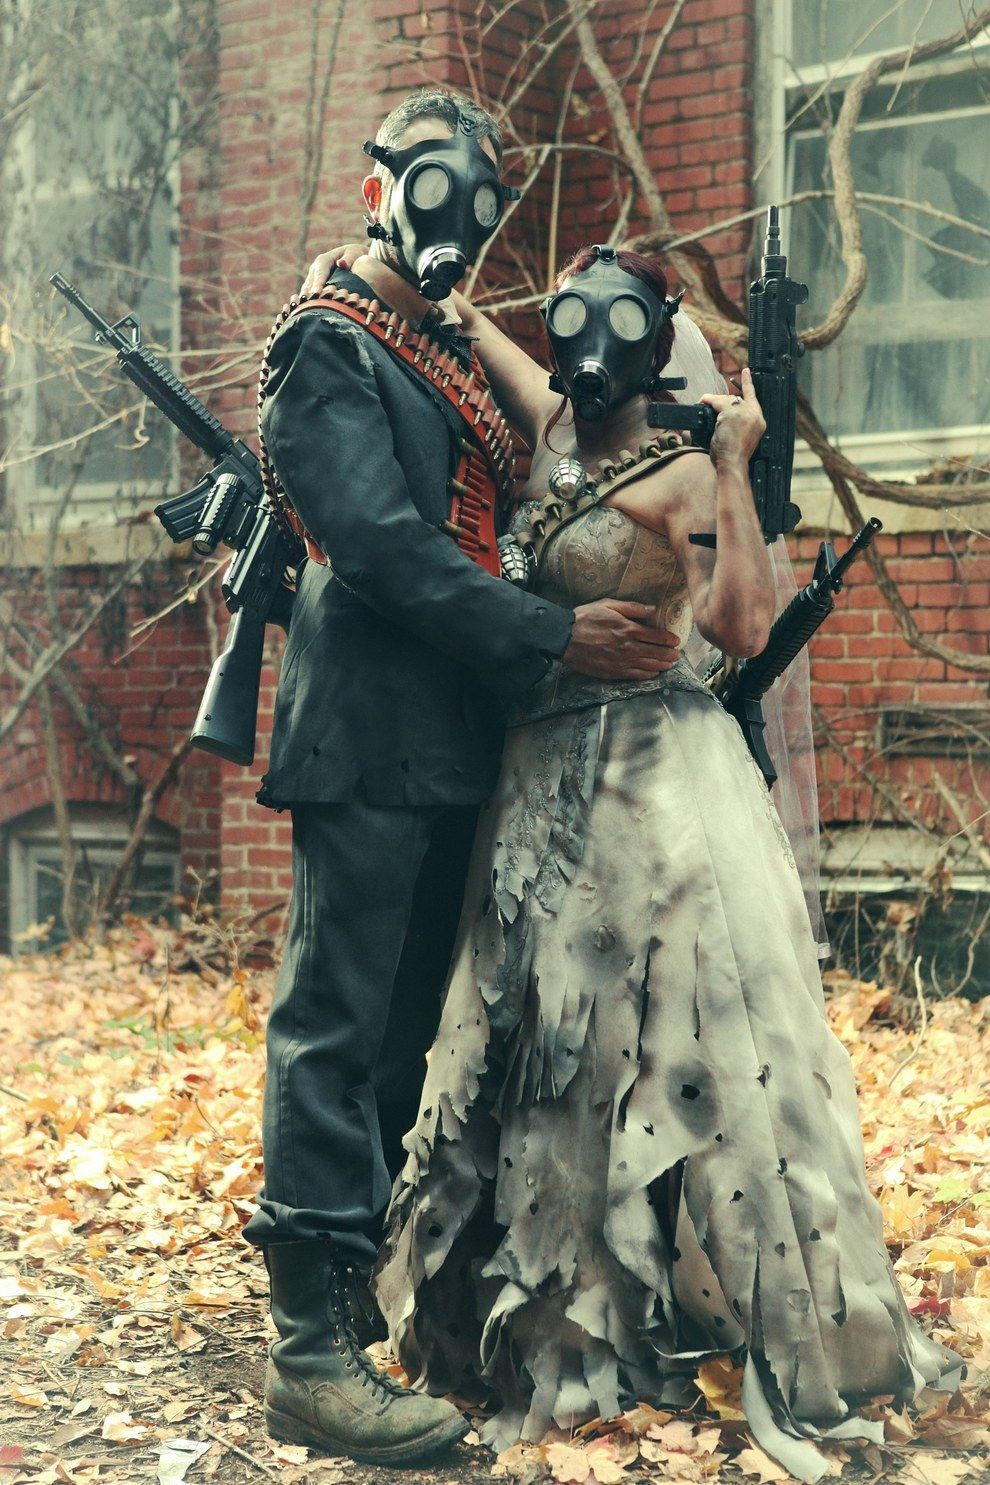 """This Post-Apocalyptic Engagement Shoot Is Totally Badass-  """"So many people have told us how cool it is we went with something different from the standard 'cuddling with each other in a grassy meadow' engagement shoot,"""" Kyser said."""